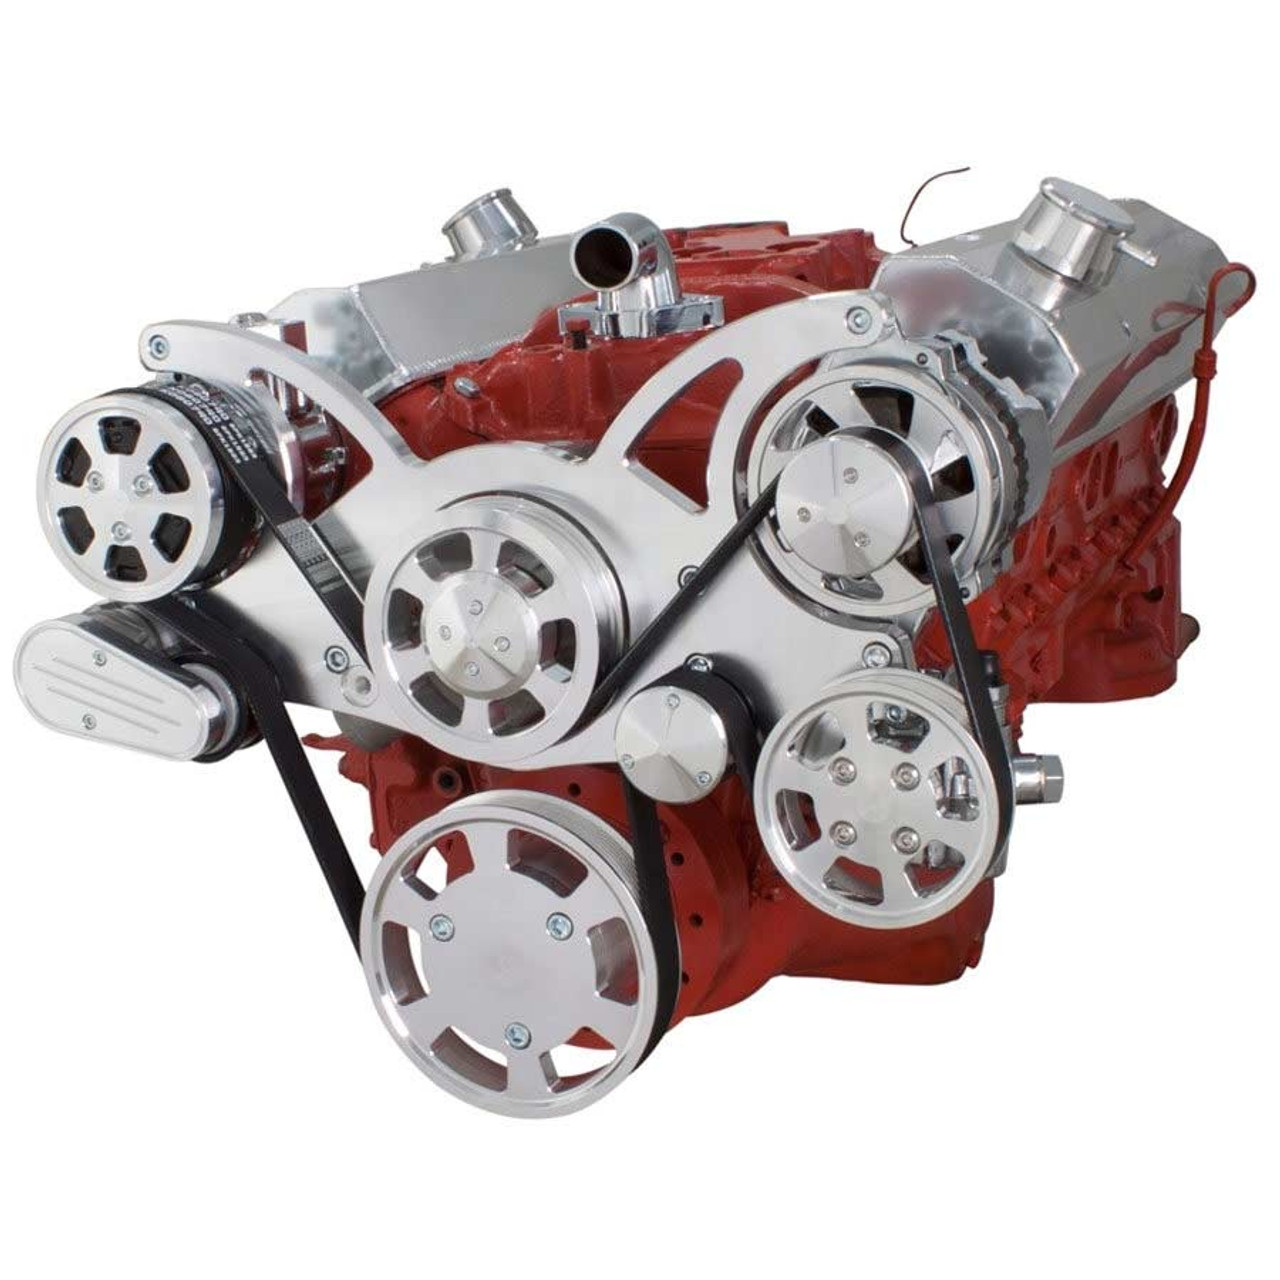 small resolution of  engine serial number serpentine conversion kit for small block chevy 283 350 400 with ac on 283